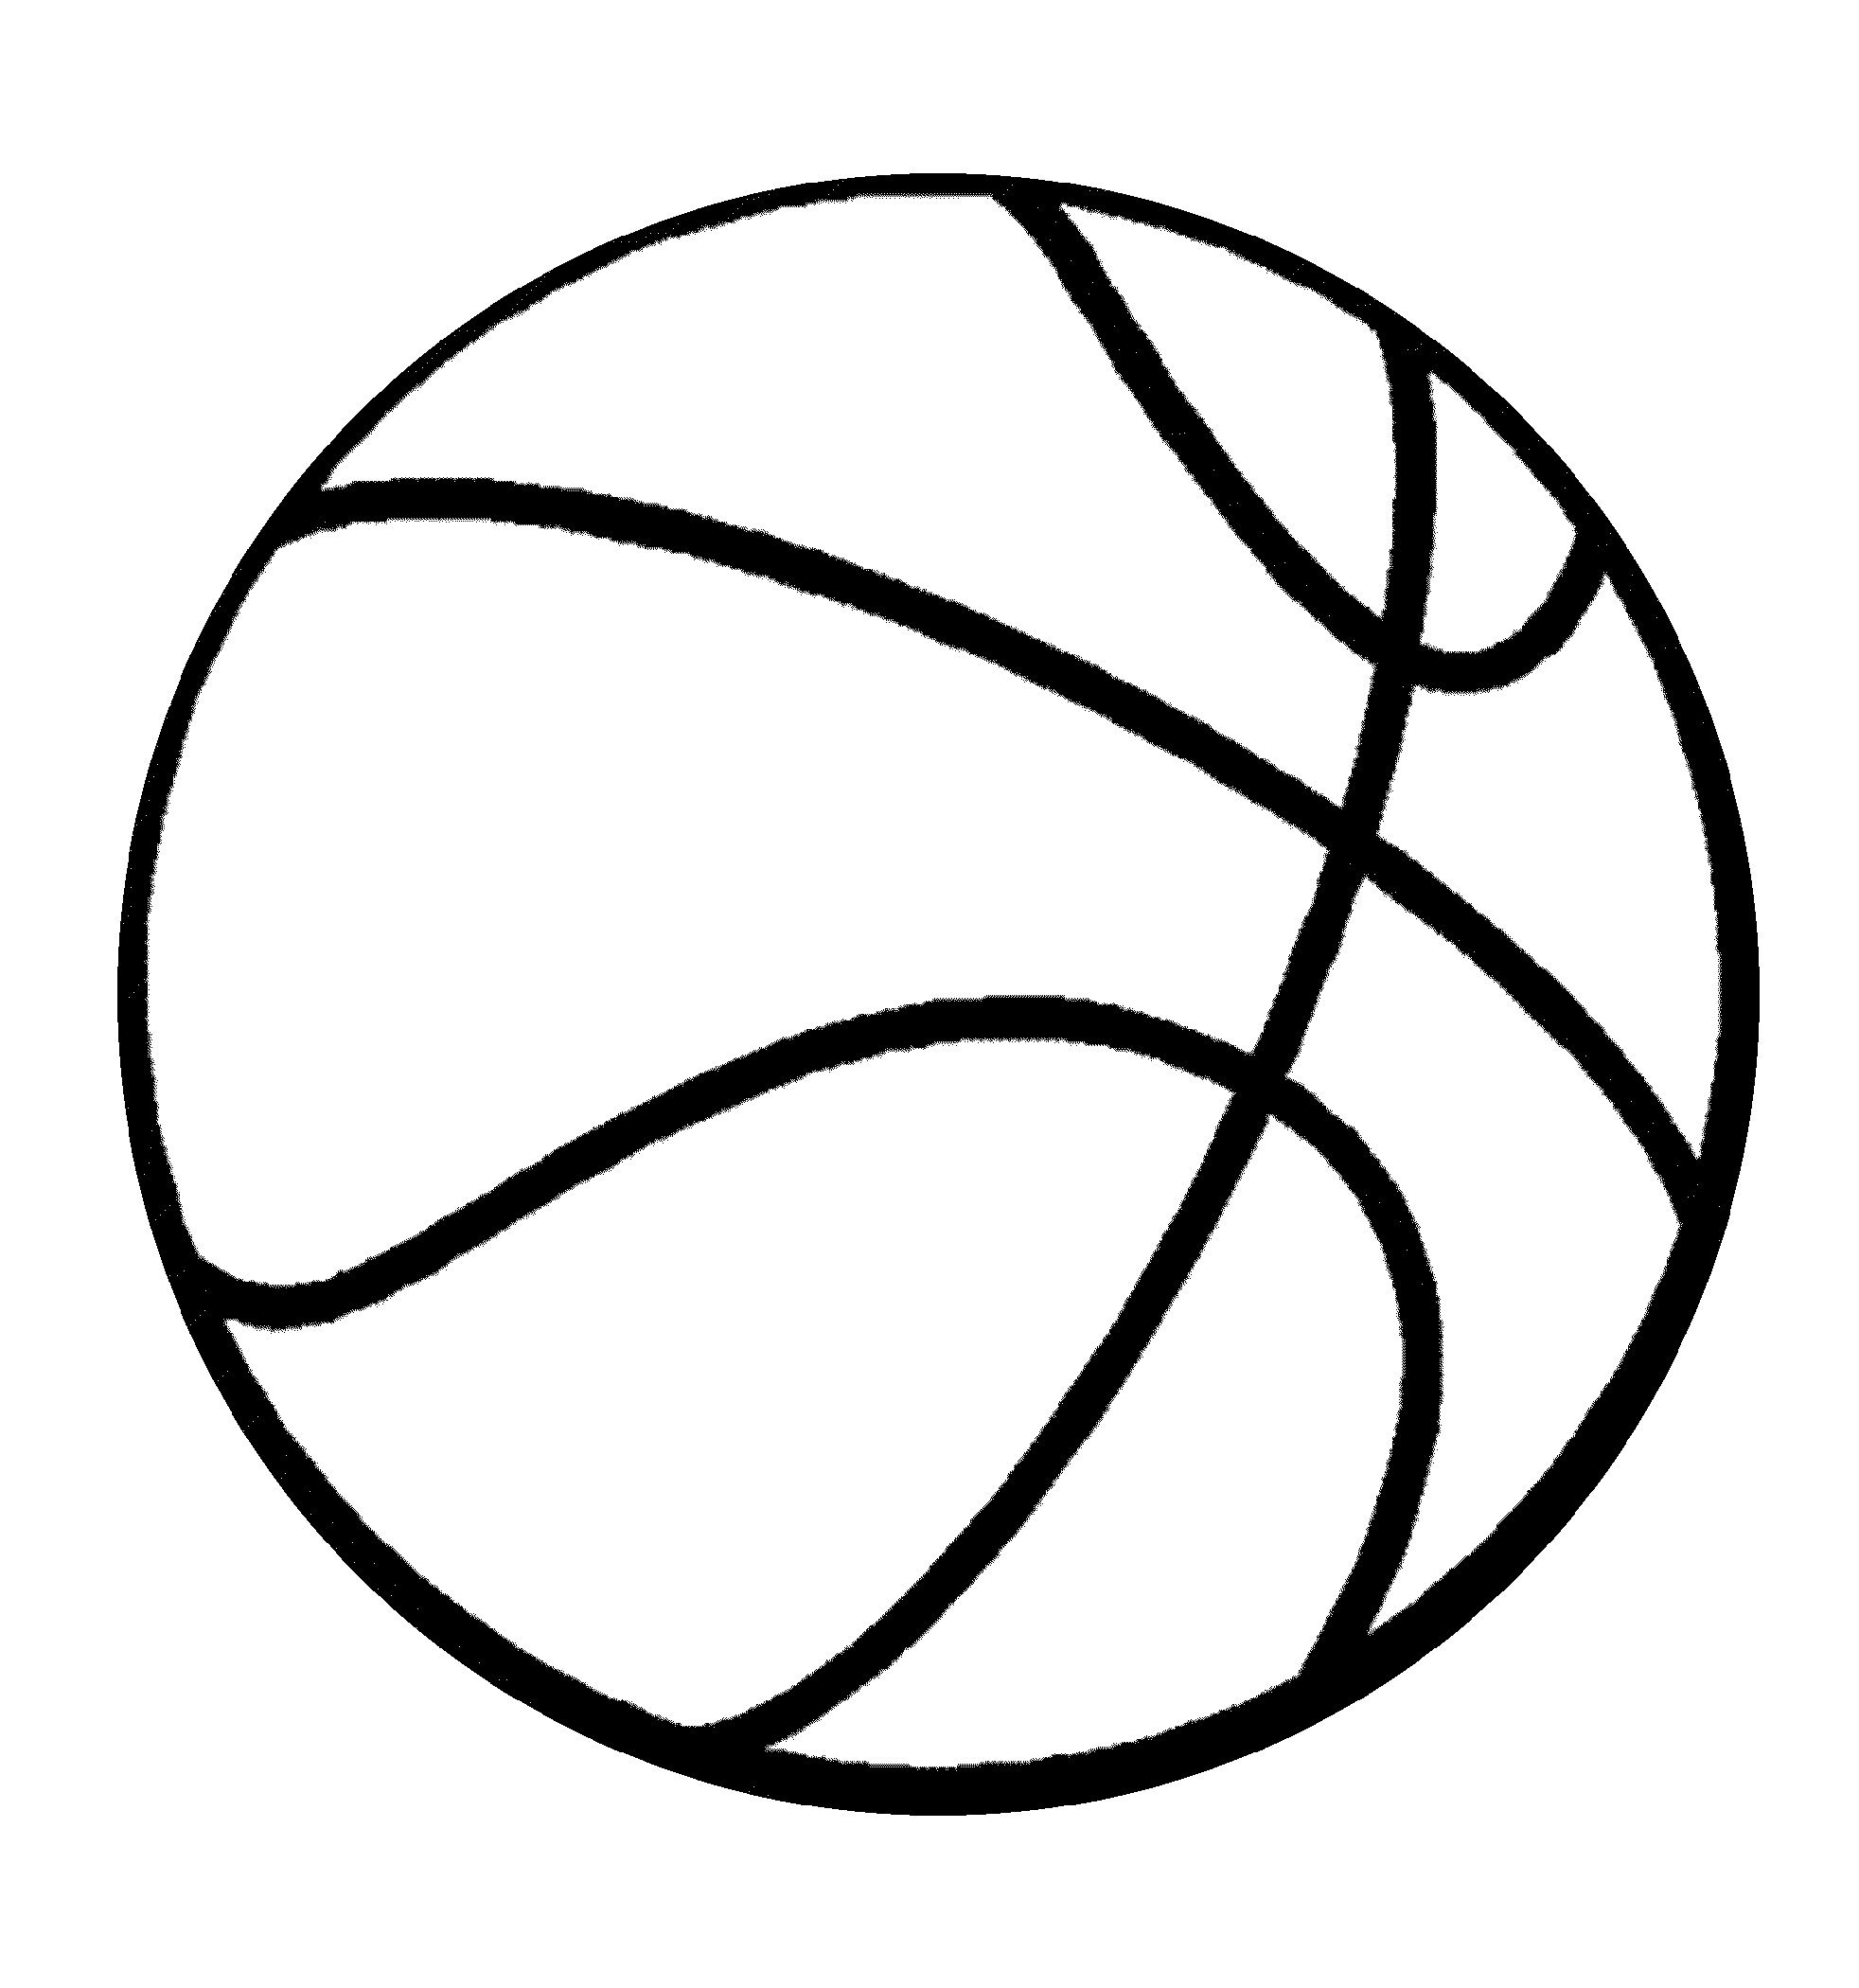 Free And Fun Basketball Color Pages For Kids Cool Coloring Pages Halloween Coloring Pages Superhero Coloring